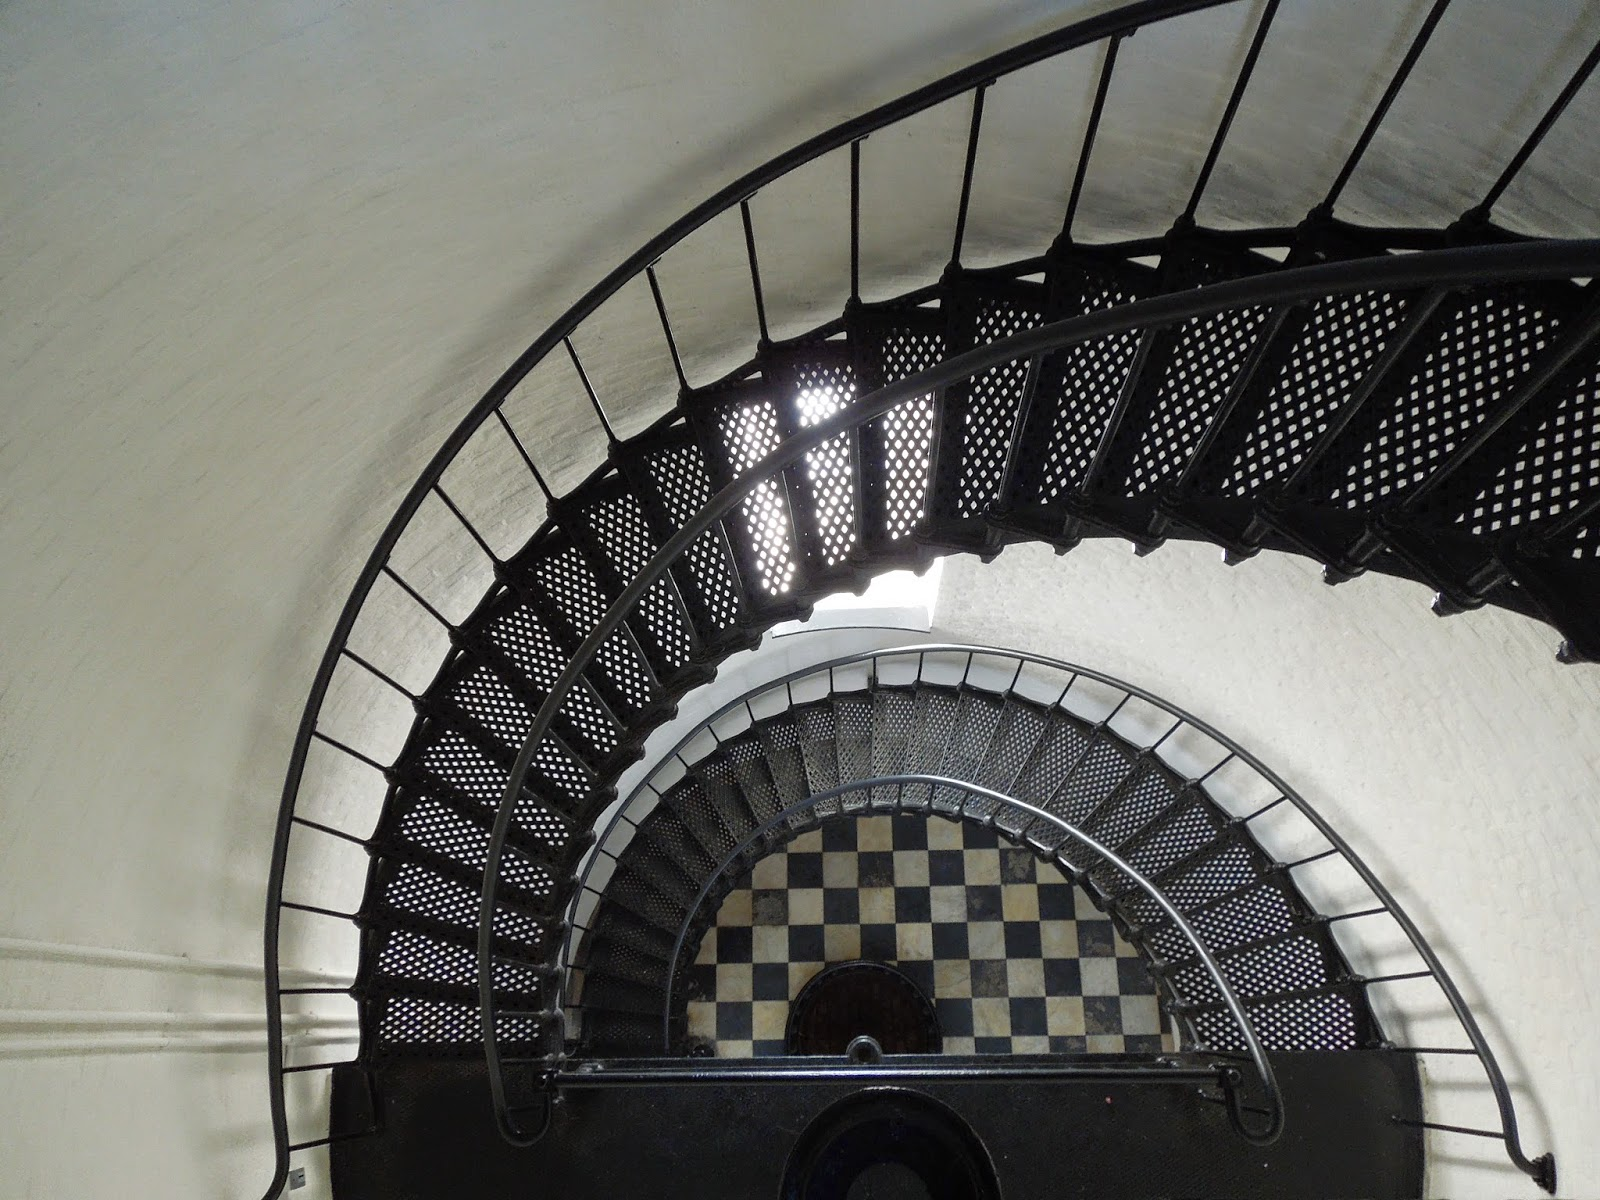 lighthouse stairs looking down